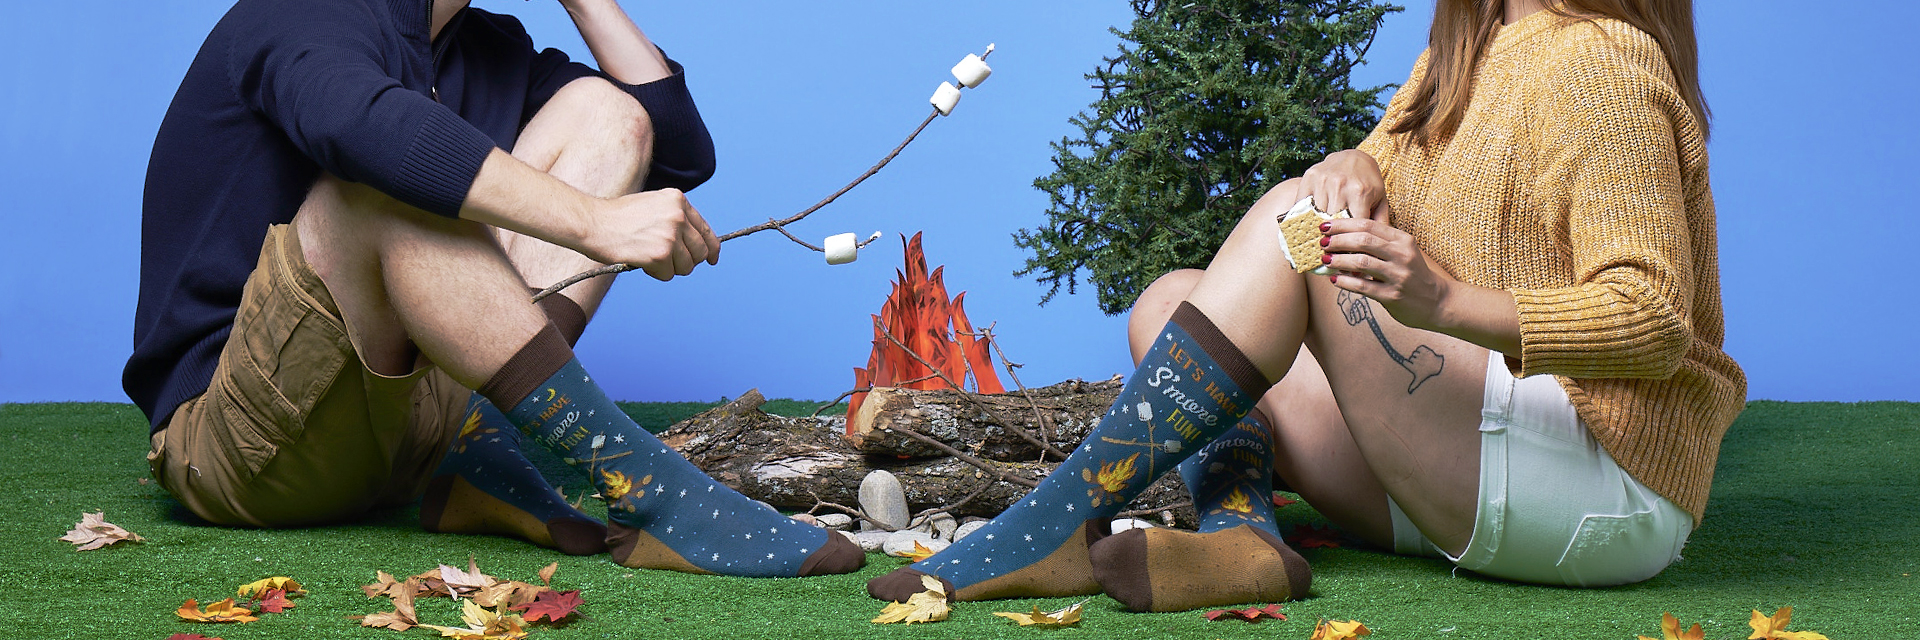 Two people wearing socks with s'mores on it sitting around a fake camp fire with marshmallows on sticks.